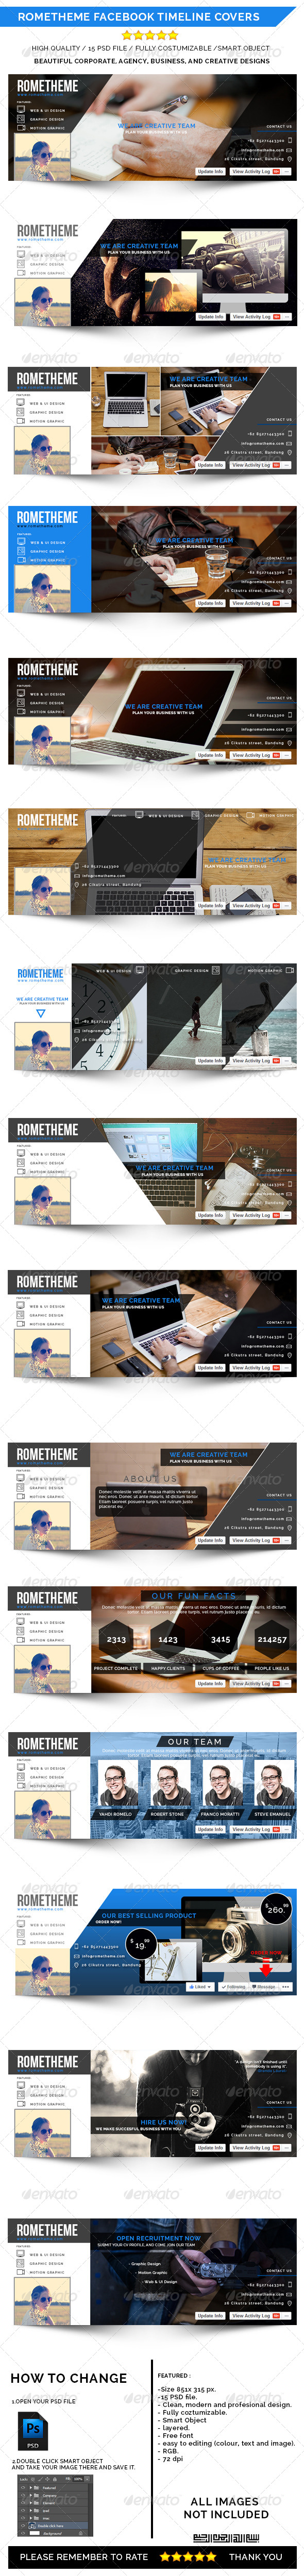 GraphicRiver Rometheme Facebook Timeline Cover 8389621